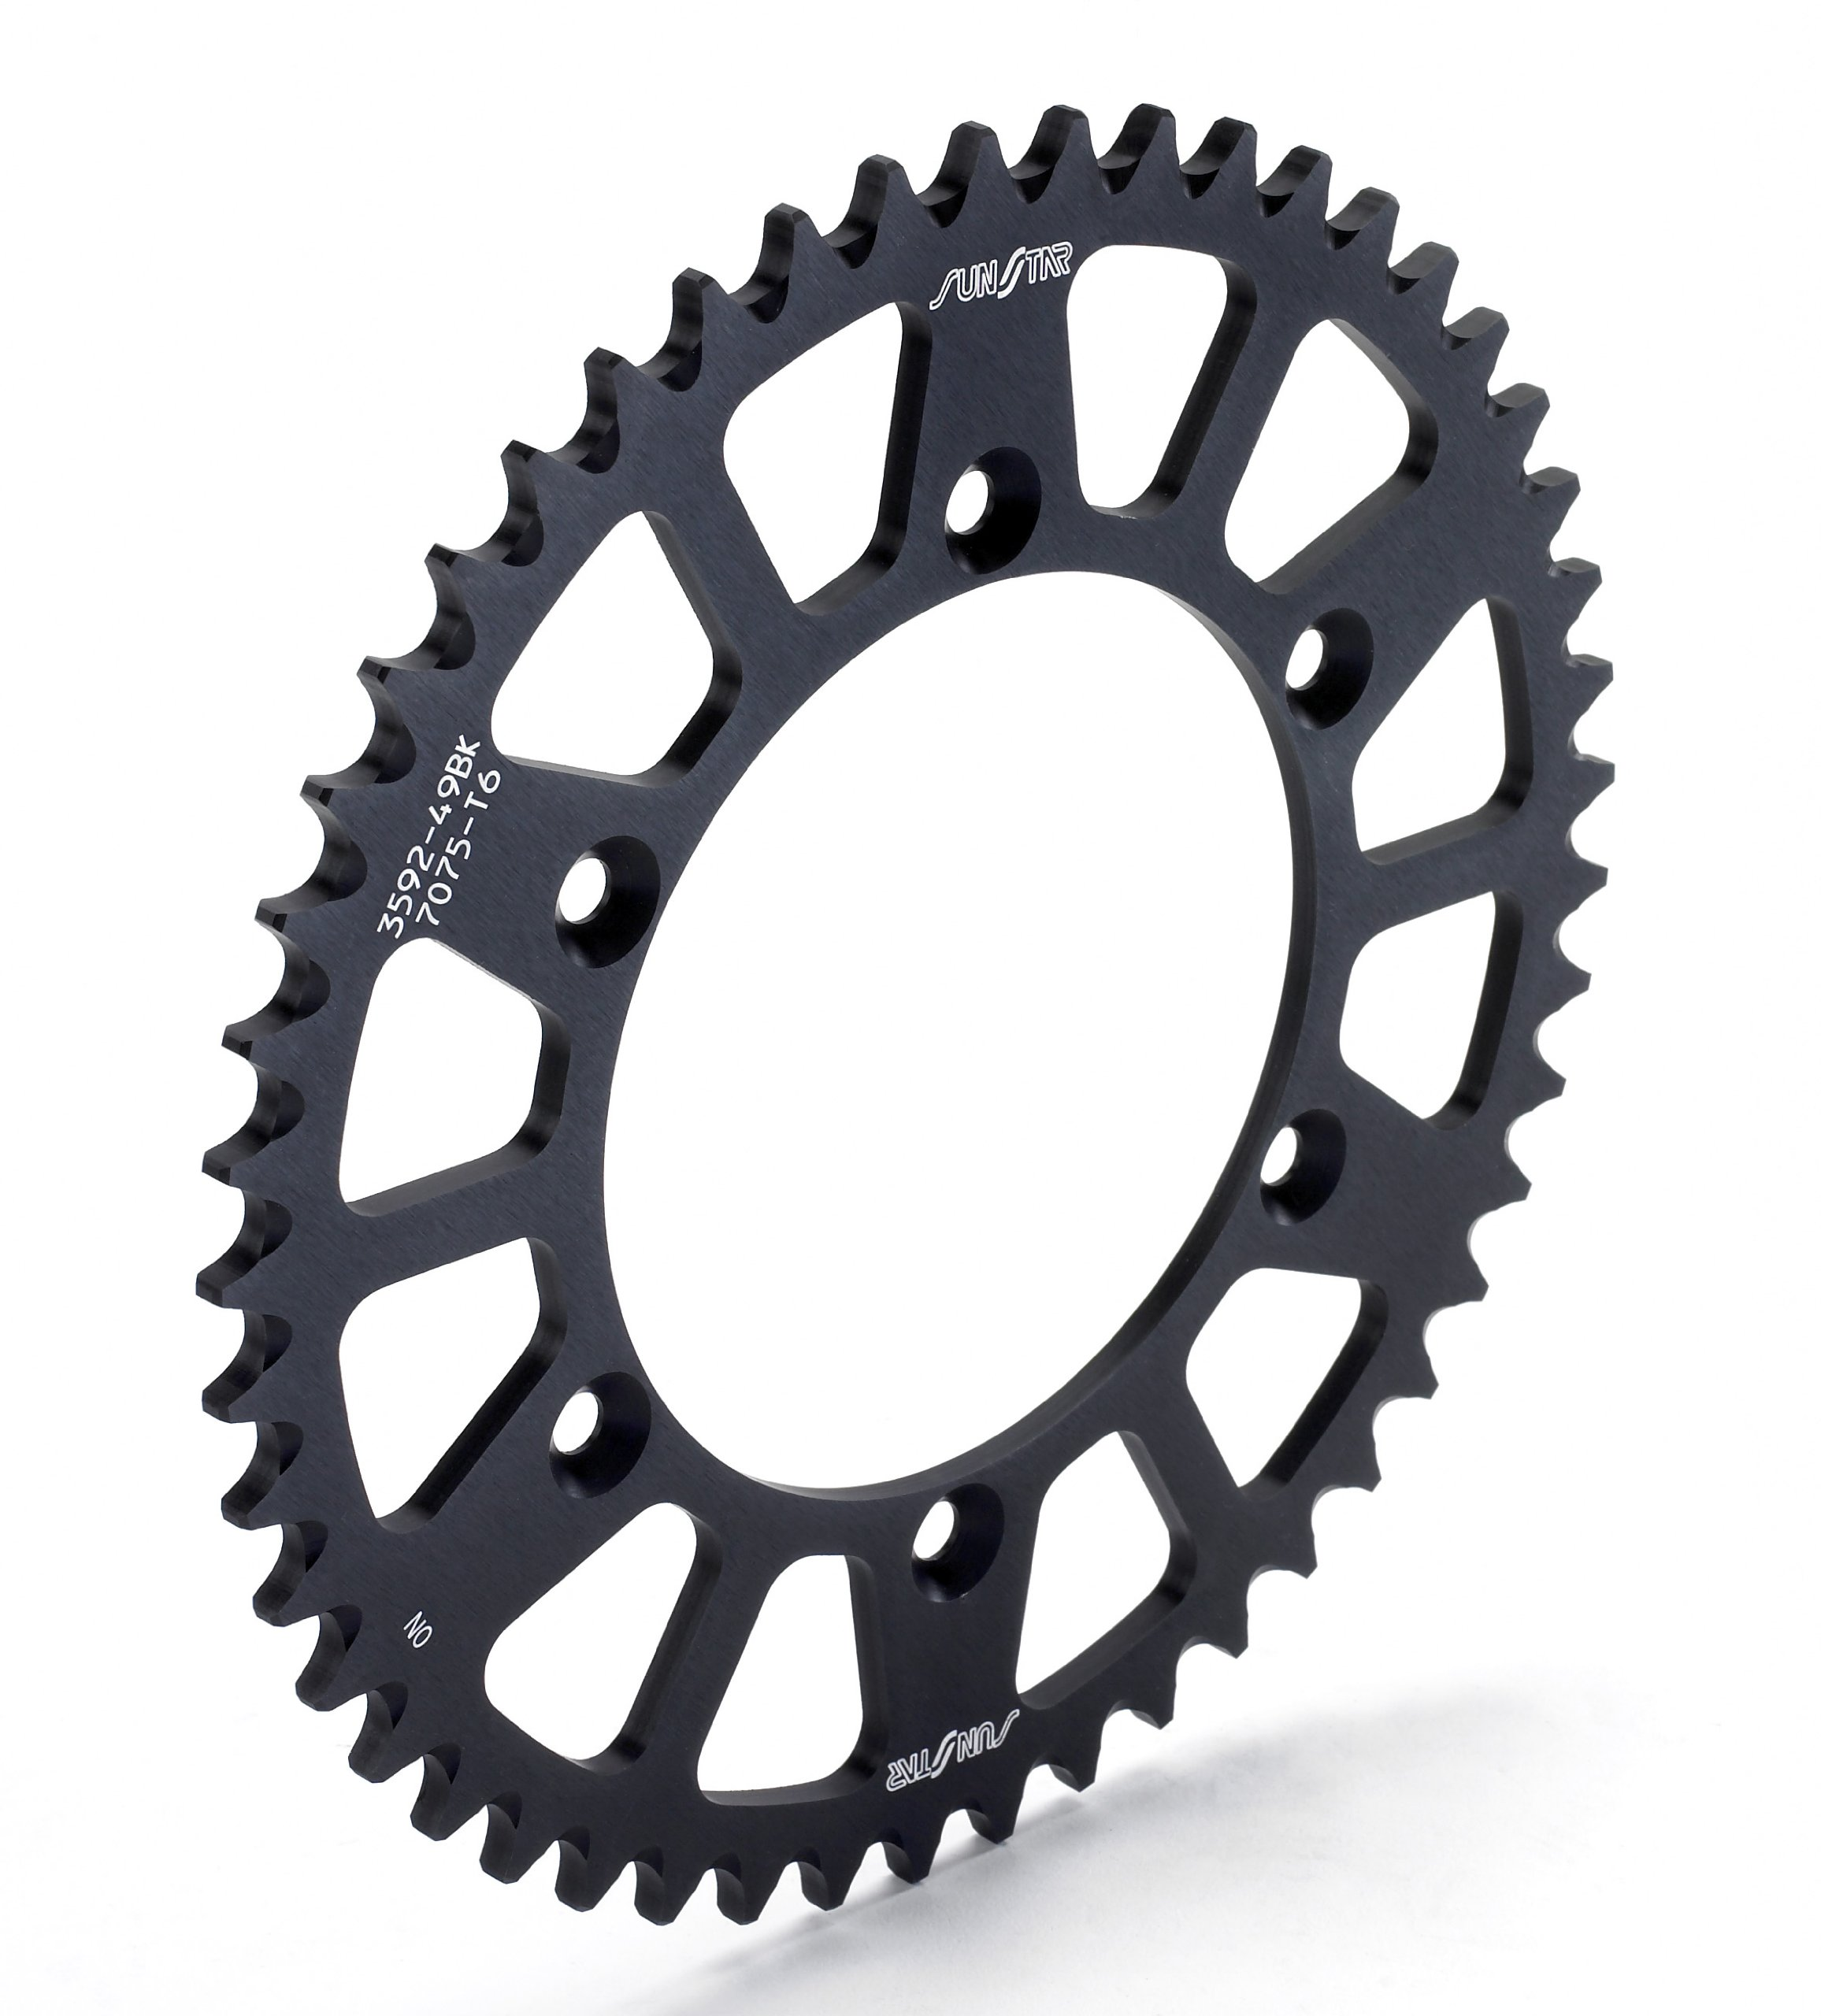 Sunstar 5-355950BK Works Triplestar Black 50-Teeth 520 Chain Size Rear Aluminum Sprocket